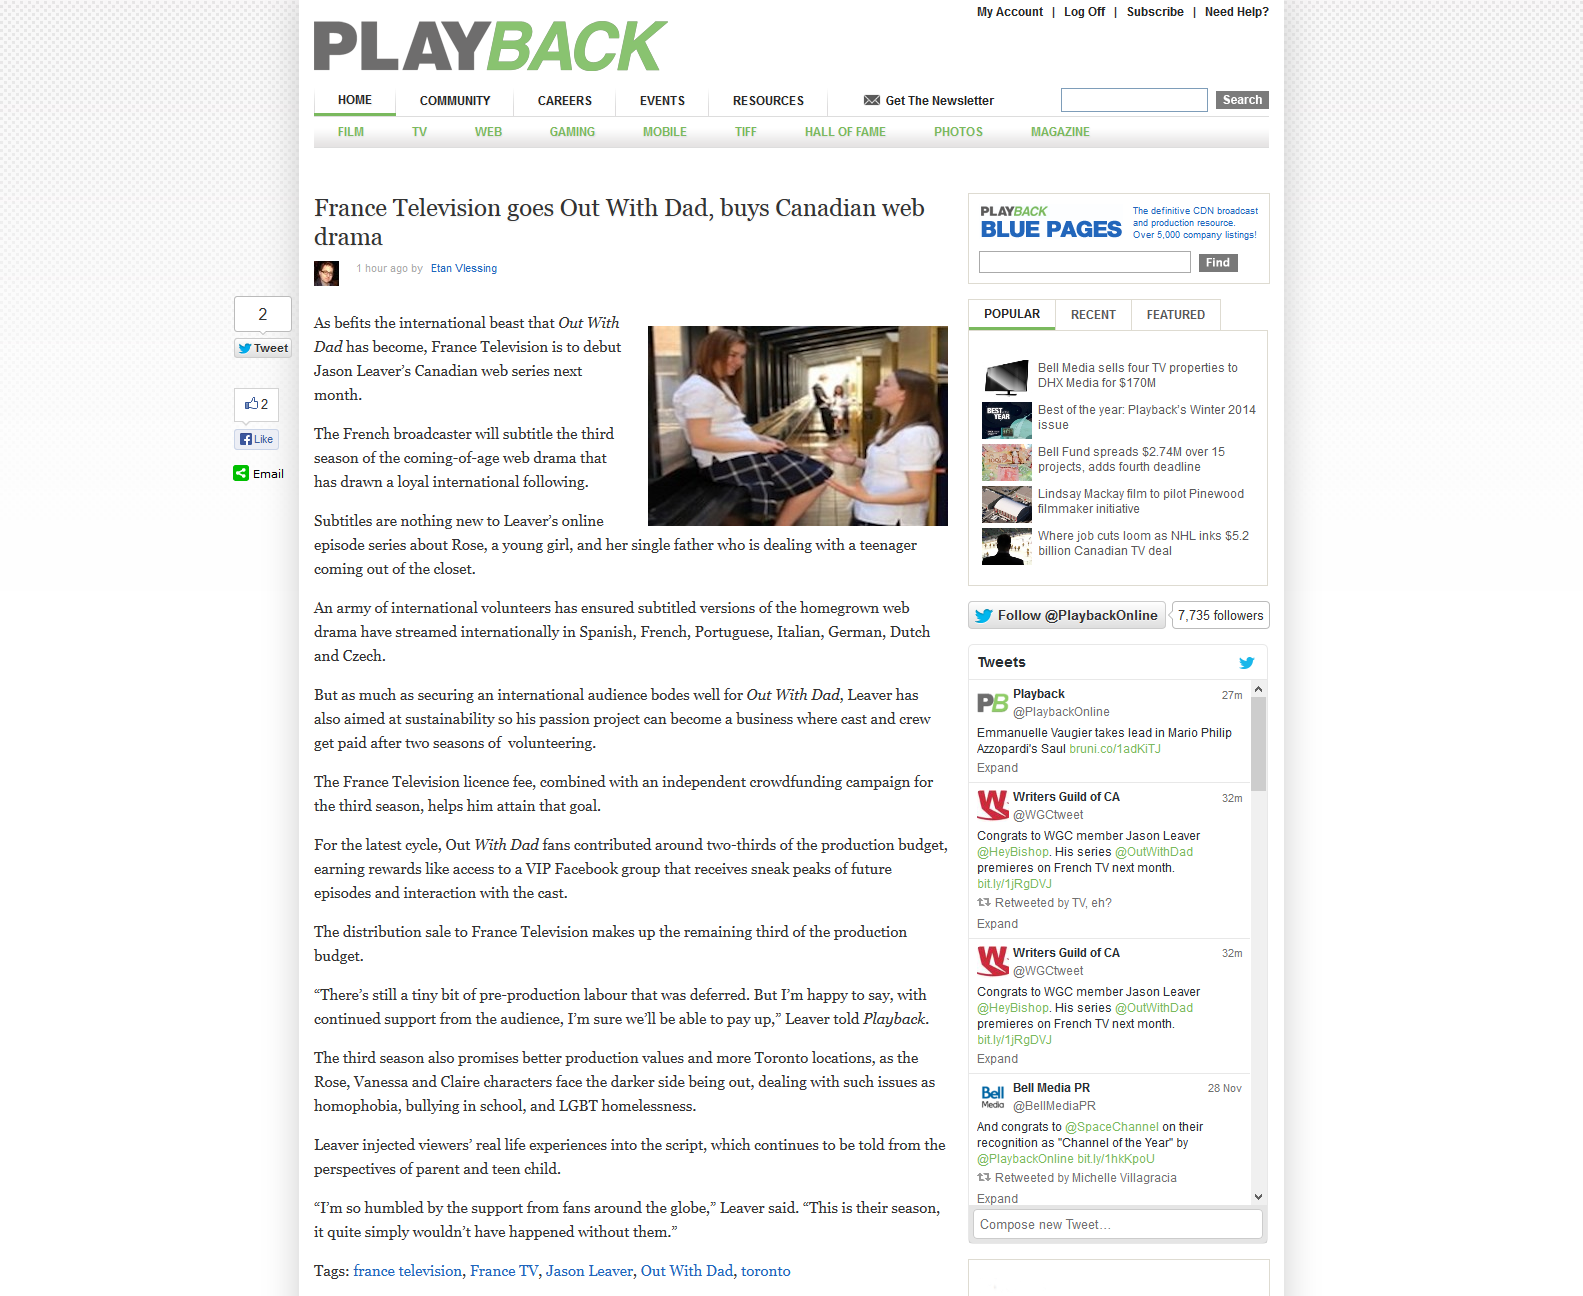 Getting some press with Playback Online